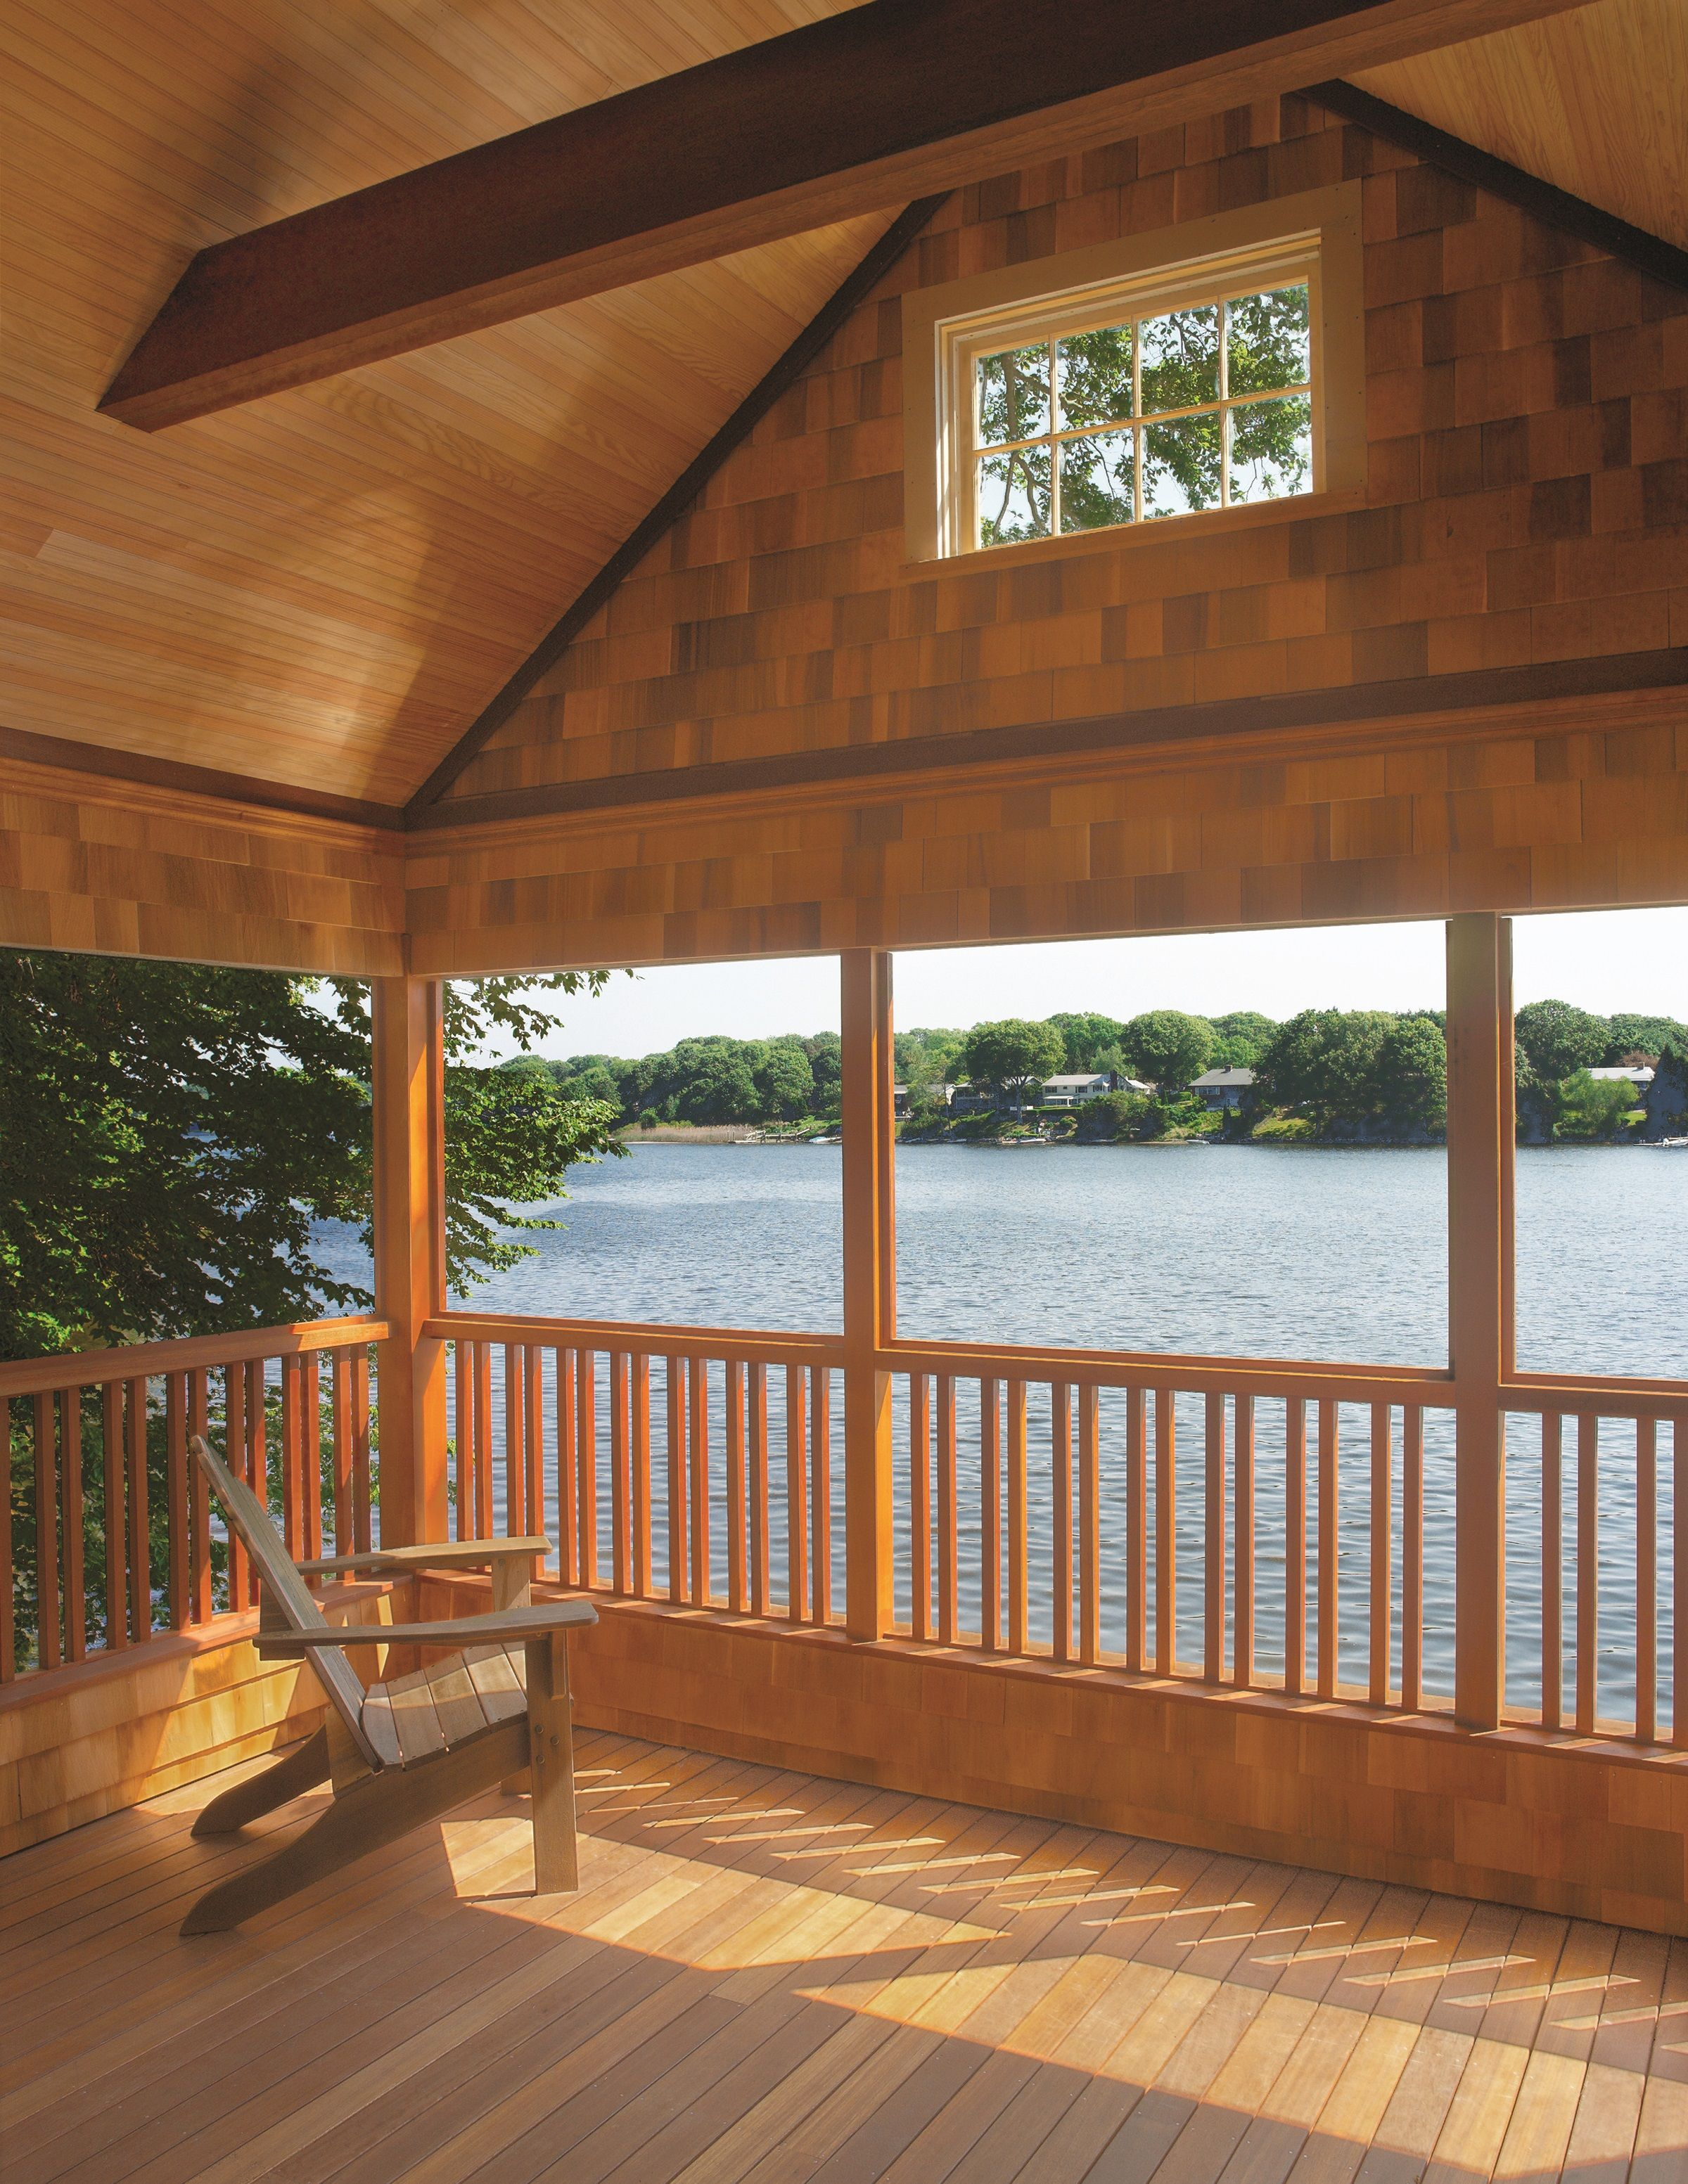 Using A Unique Blend Of Resin And Oil Cabot Wood Toned Deck Siding Stain Enhances The Natural Appearance Of Bare Outside Living Staining Deck Exterior Wood